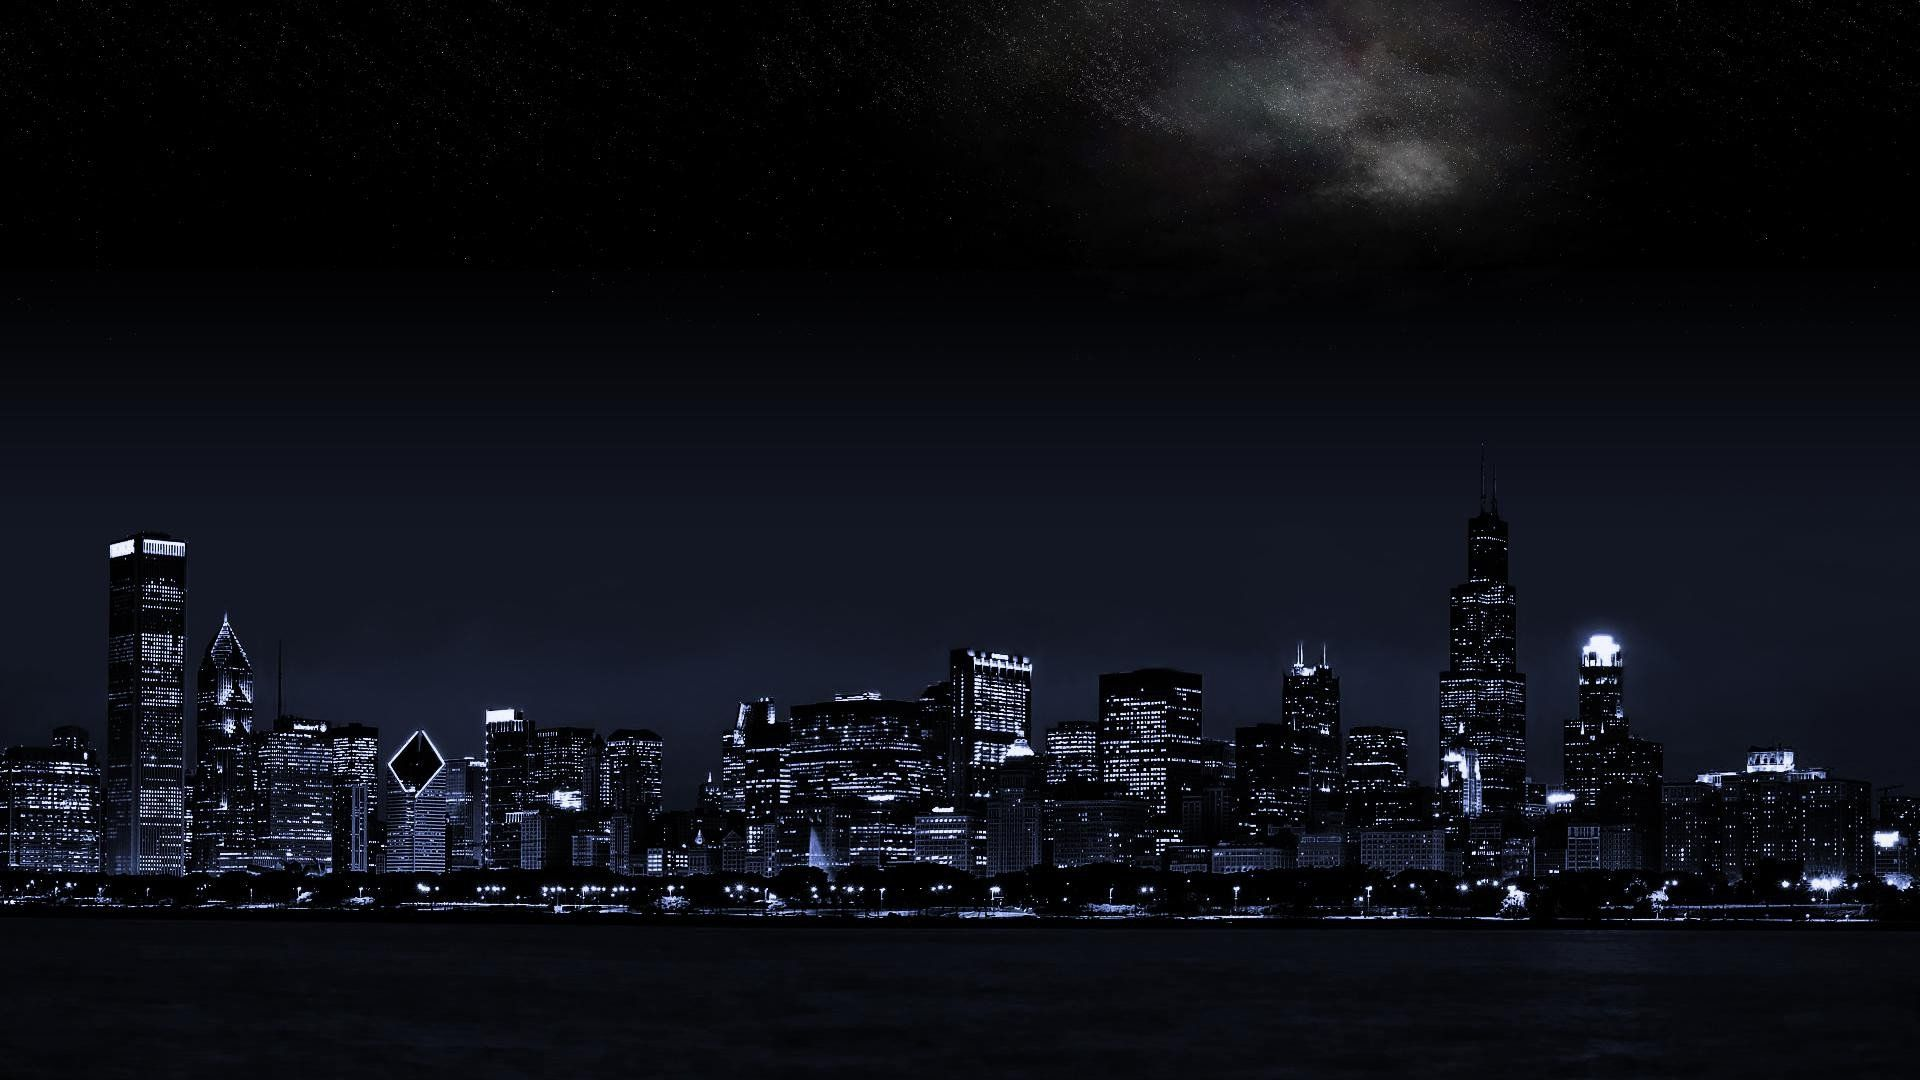 Night City Wallpaper Free Dark Landscape Dual Monitor Wallpaper Landscape Wallpaper